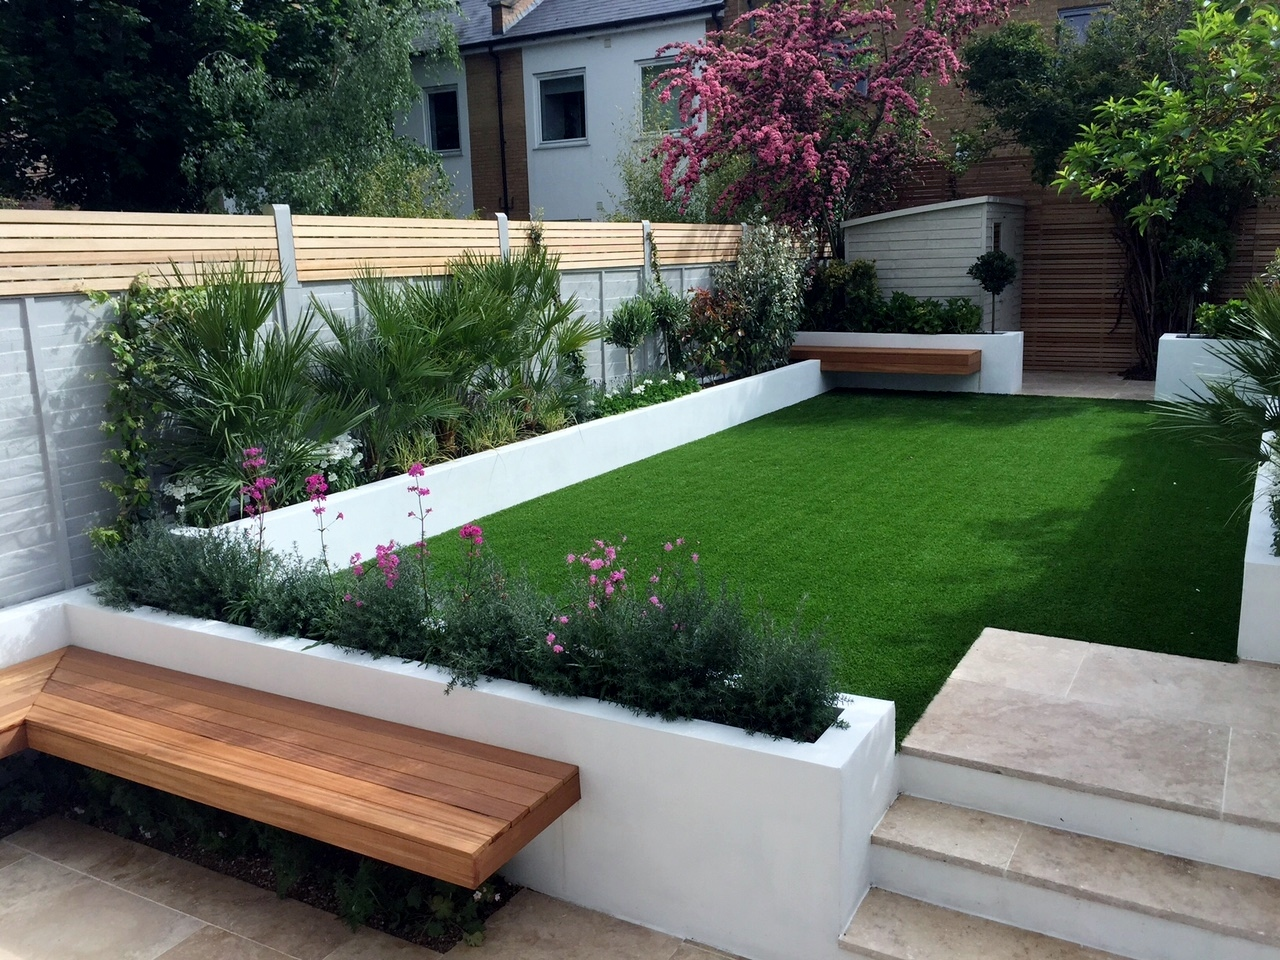 Modern garden design ideas fulham chelsea battersea for Garden design plans uk